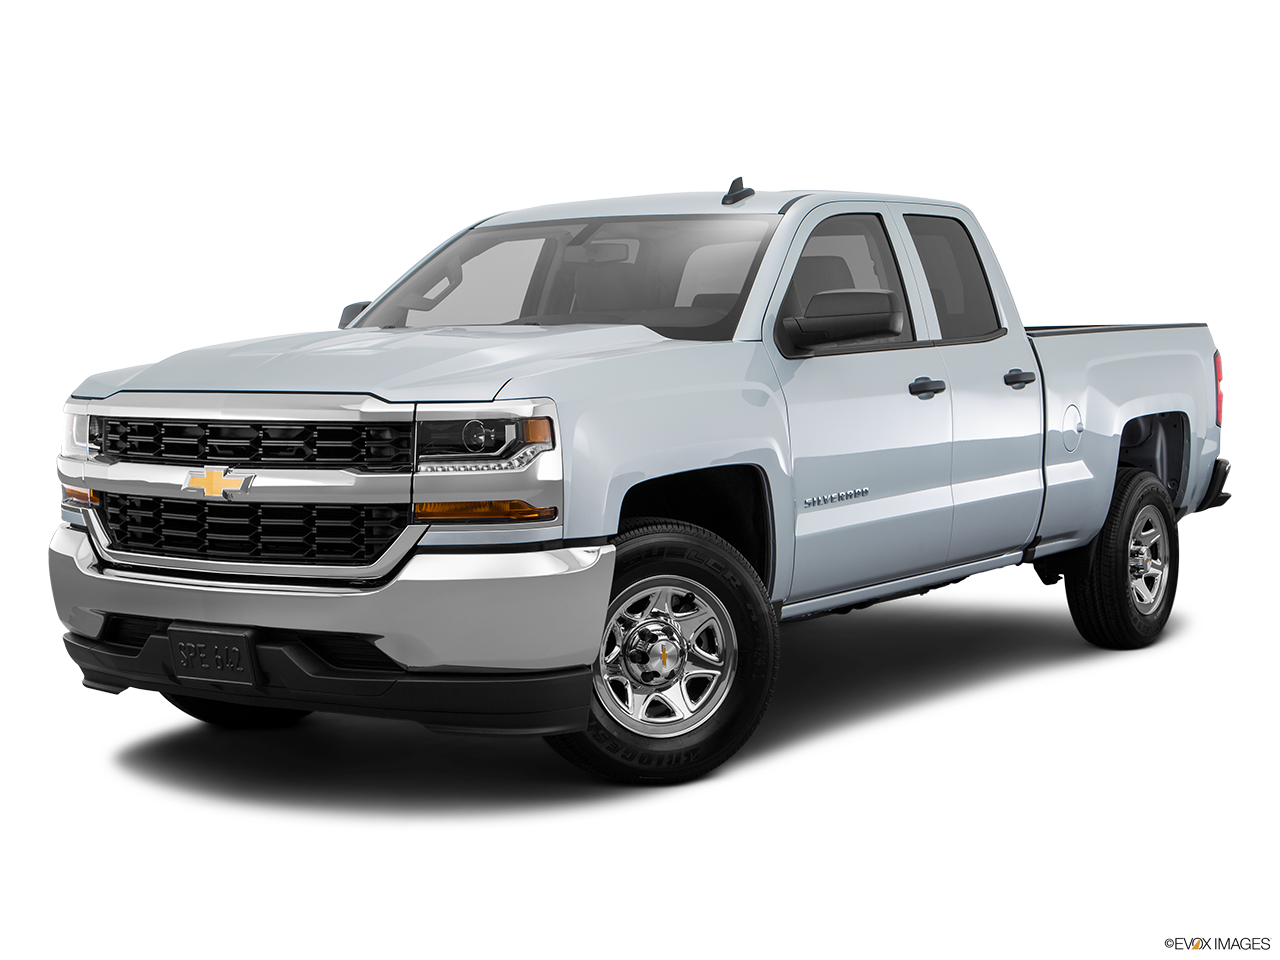 2016 chevrolet silverado 1500 riverside moss bros chevrolet. Black Bedroom Furniture Sets. Home Design Ideas